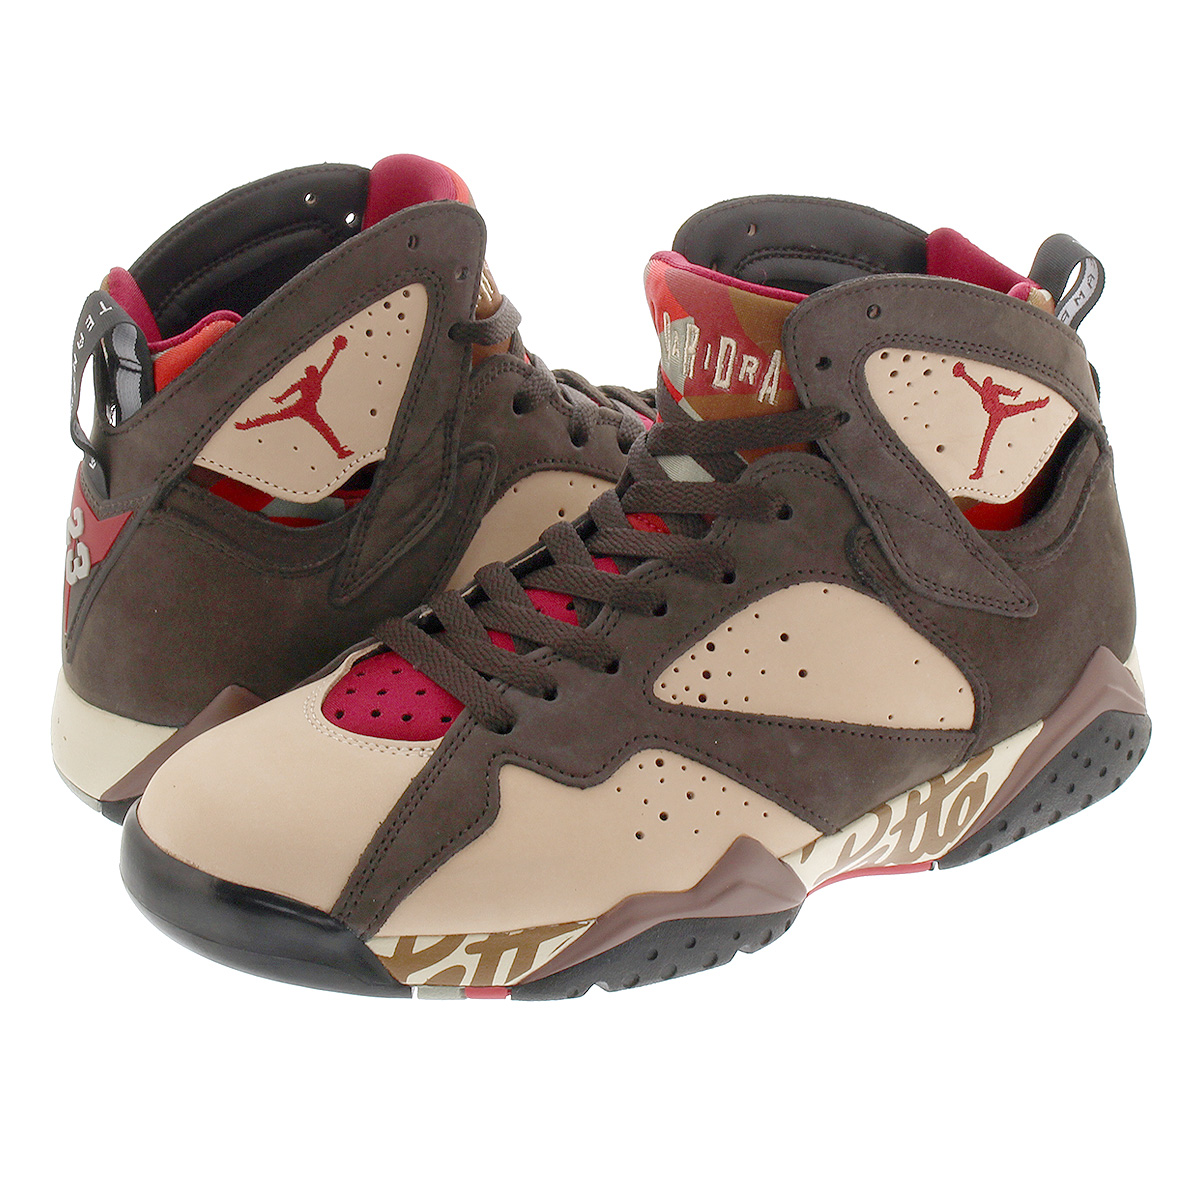 5f69a662fc414 NIKE AIR JORDAN 7 RETRO PATTA Nike Air Jordan 7 レトロパタ SHIMMER/TOUGH RED/ ...